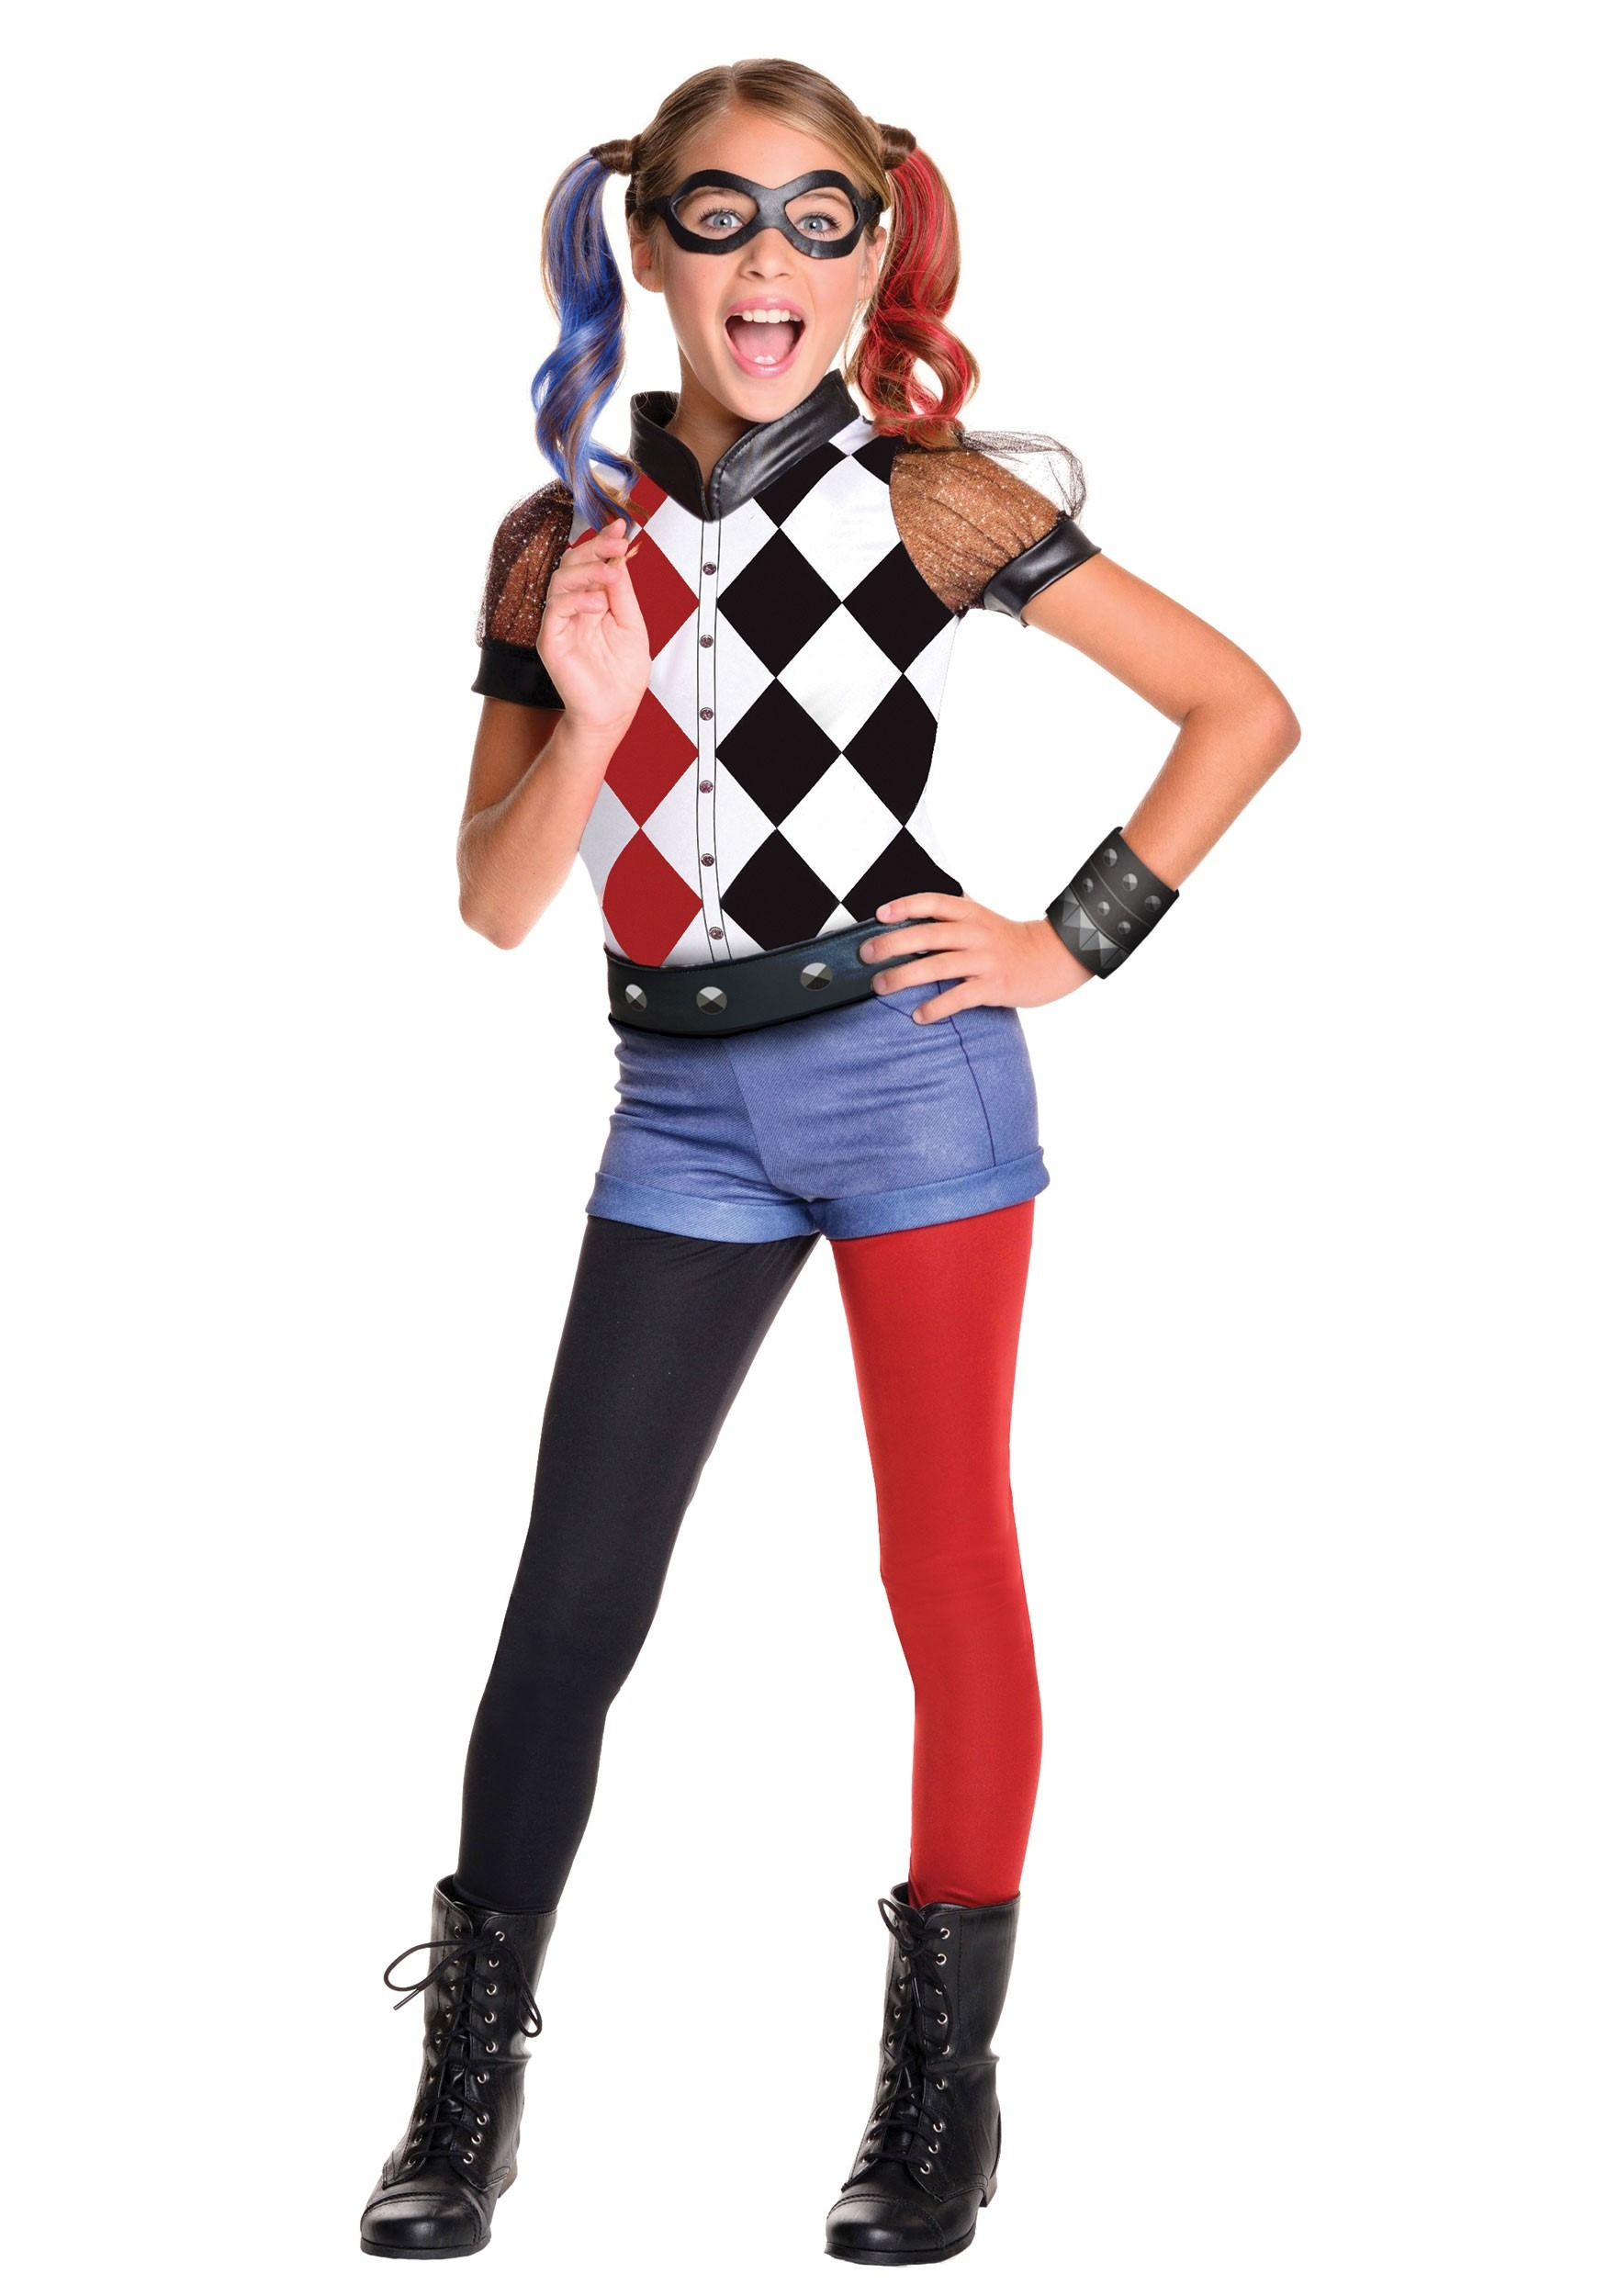 DC Superhero Girls Deluxe Harley Quinn Costume  sc 1 st  Halloween Costumes & Superhero Costumes for Kids - Halloween Child Toddler Superhero ...